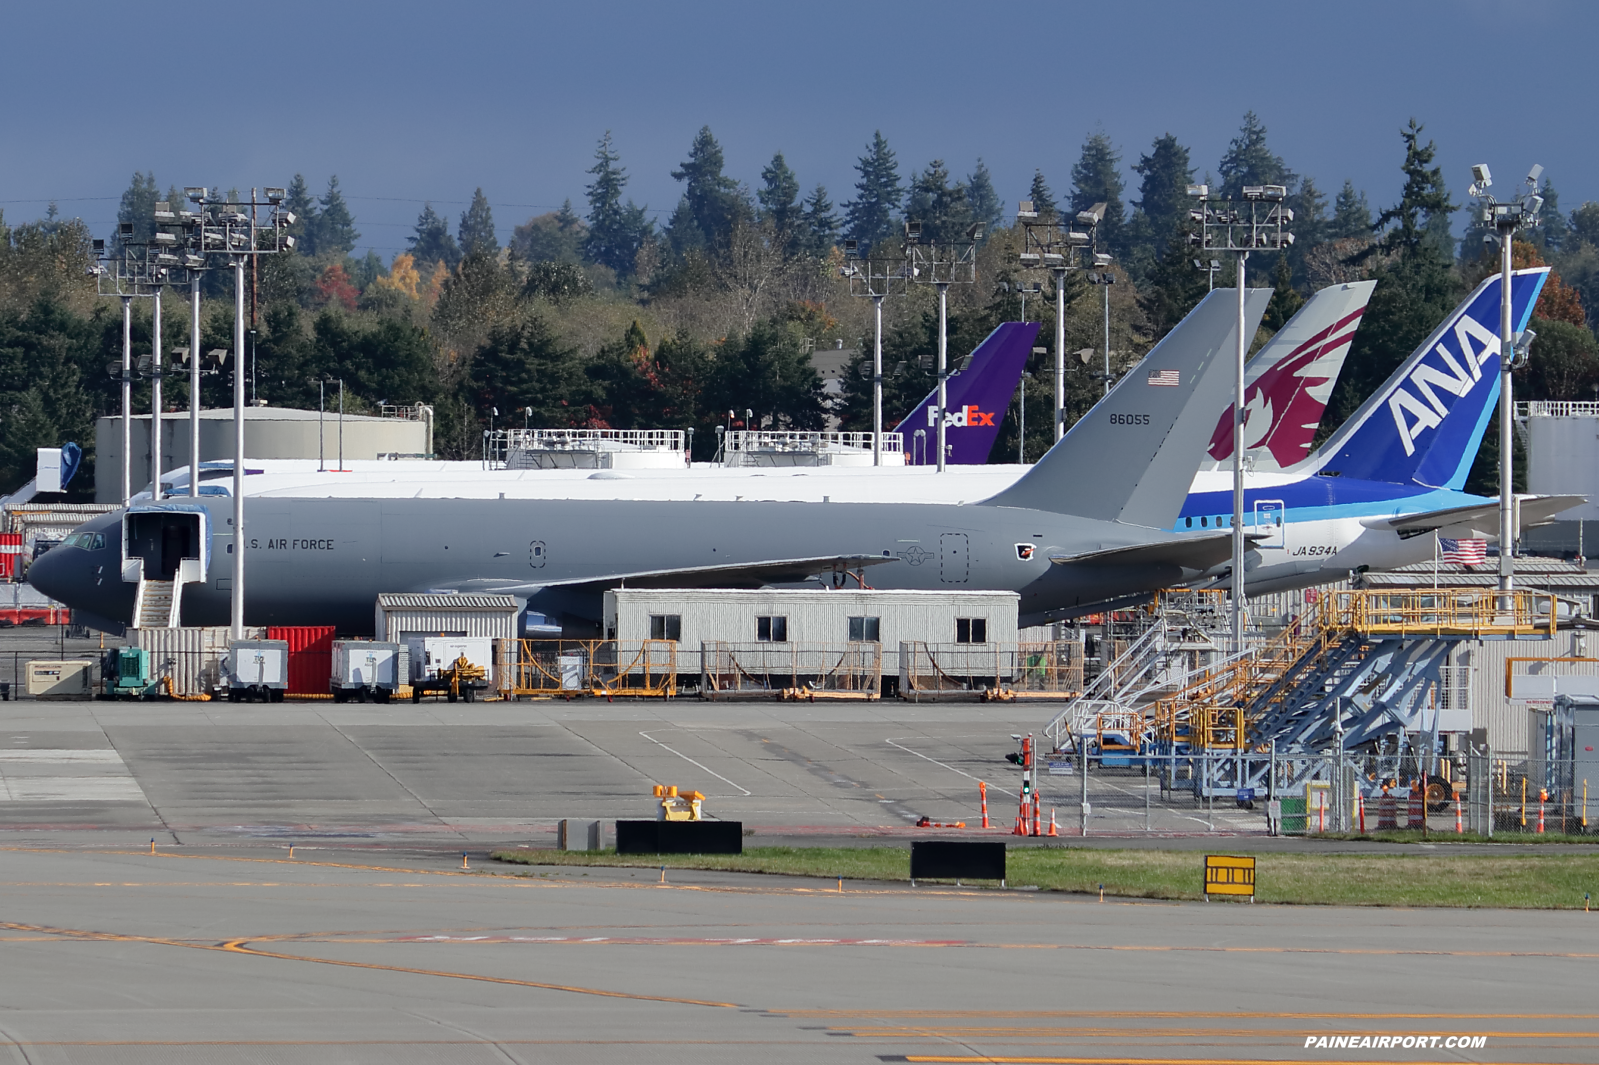 KC-46A 18-46055 at KPAE Paine Field